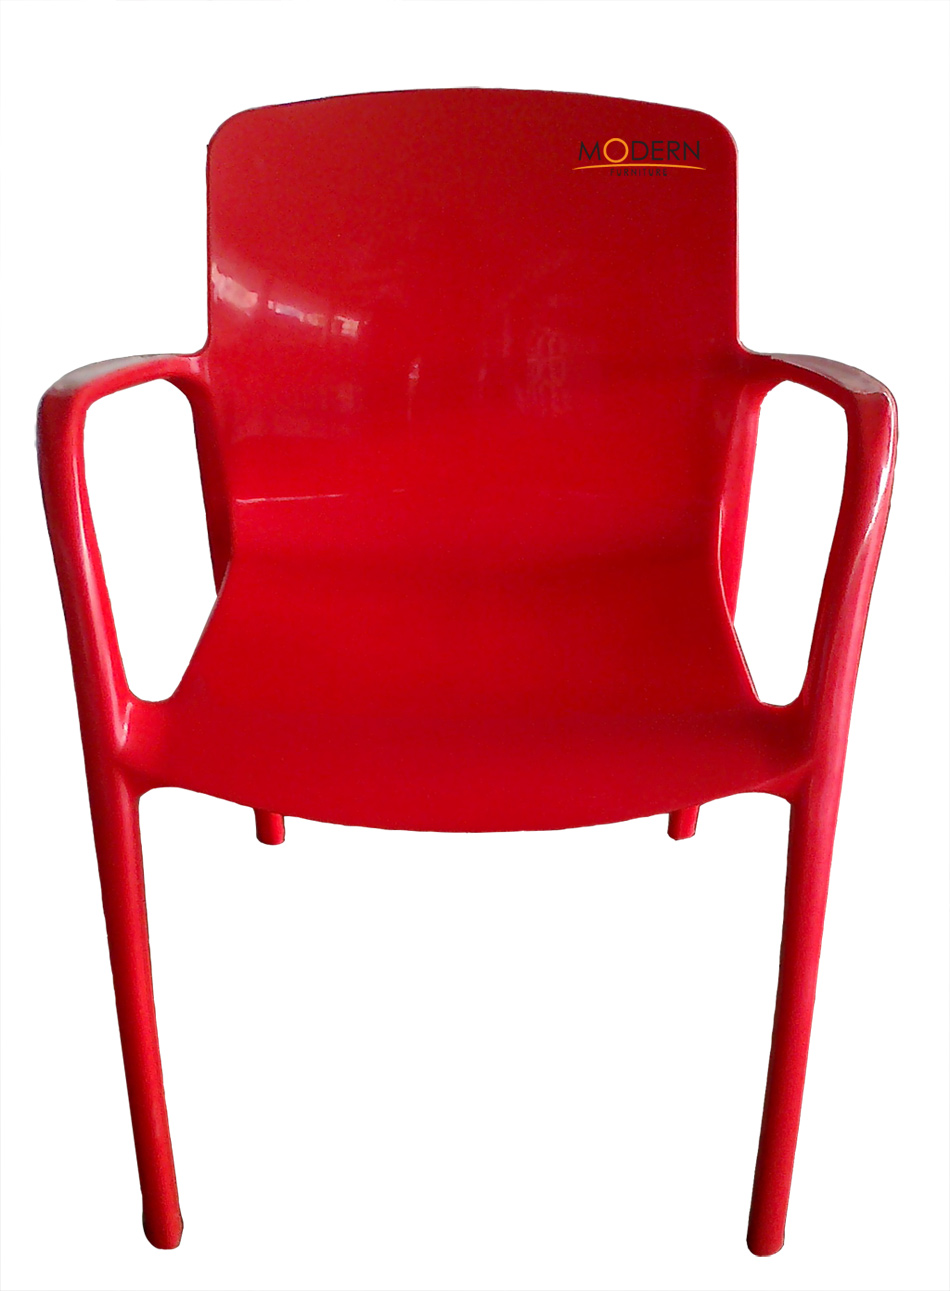 http://www.modernfurniture.co.th/img572/lreds.jpg